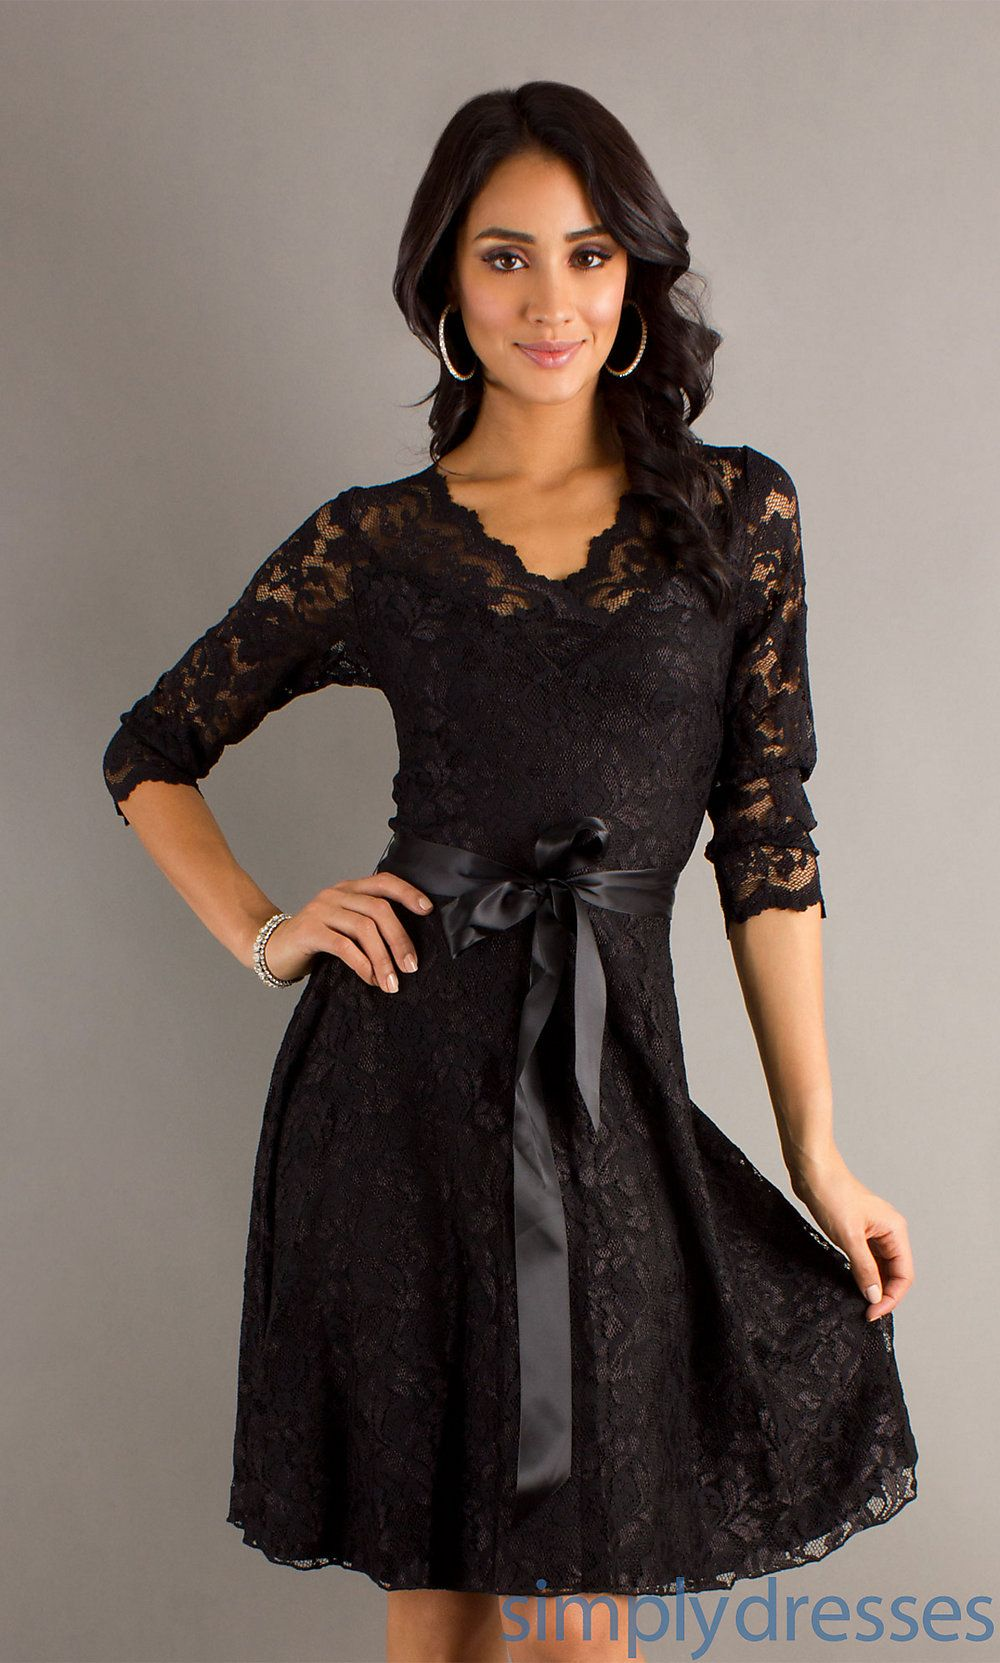 Short black lace dress simply dresses all types pinterest